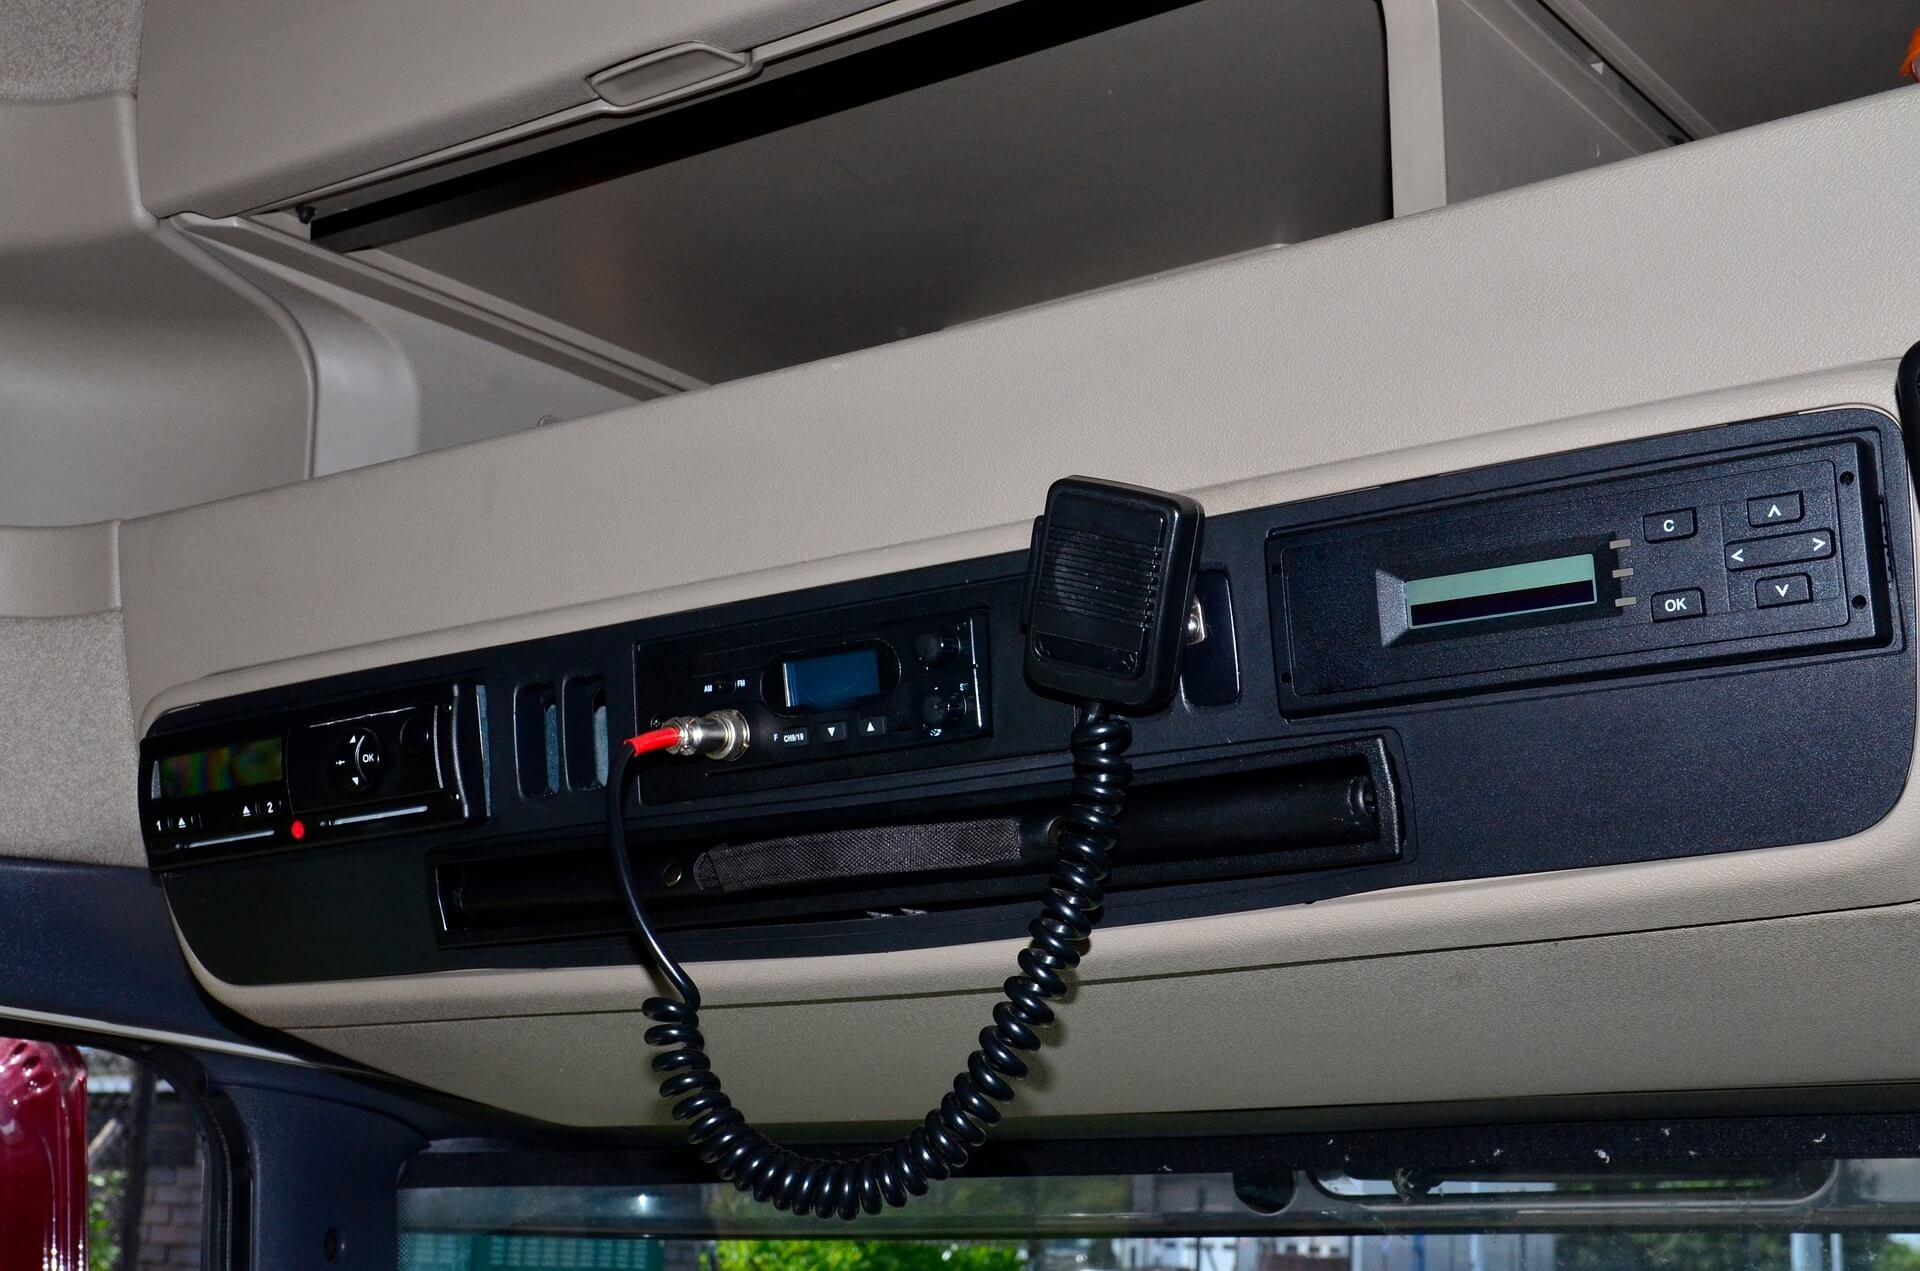 Best CB radios available in 2019.